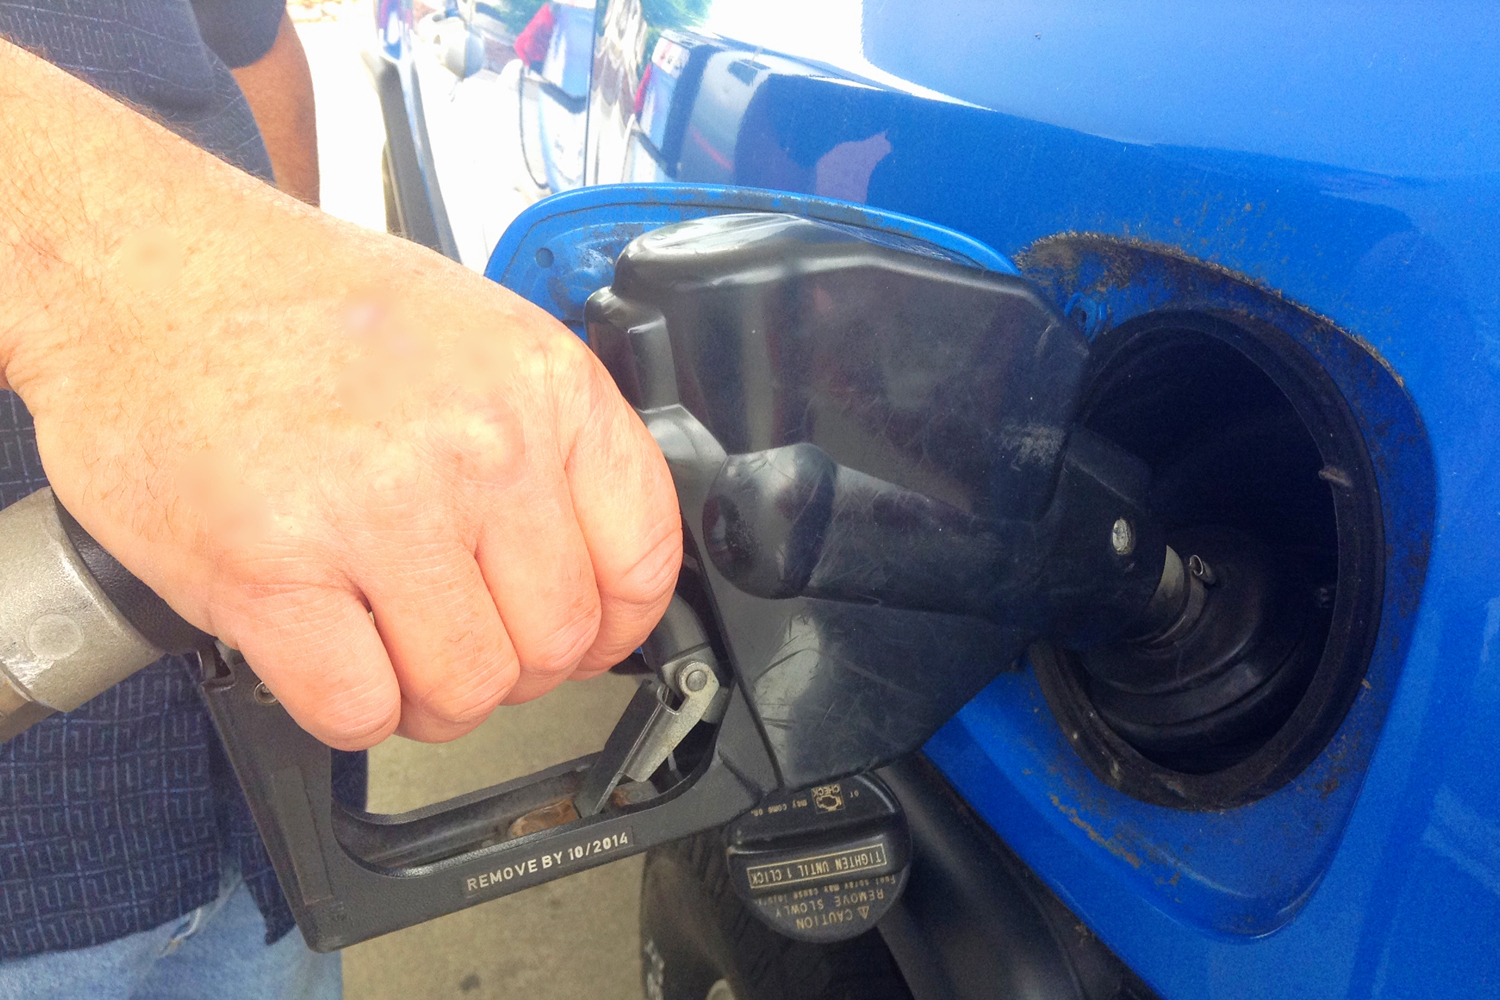 There was much celebration among motorist over low gas prices in 2016, but the price slump was a hard hit for Texas.